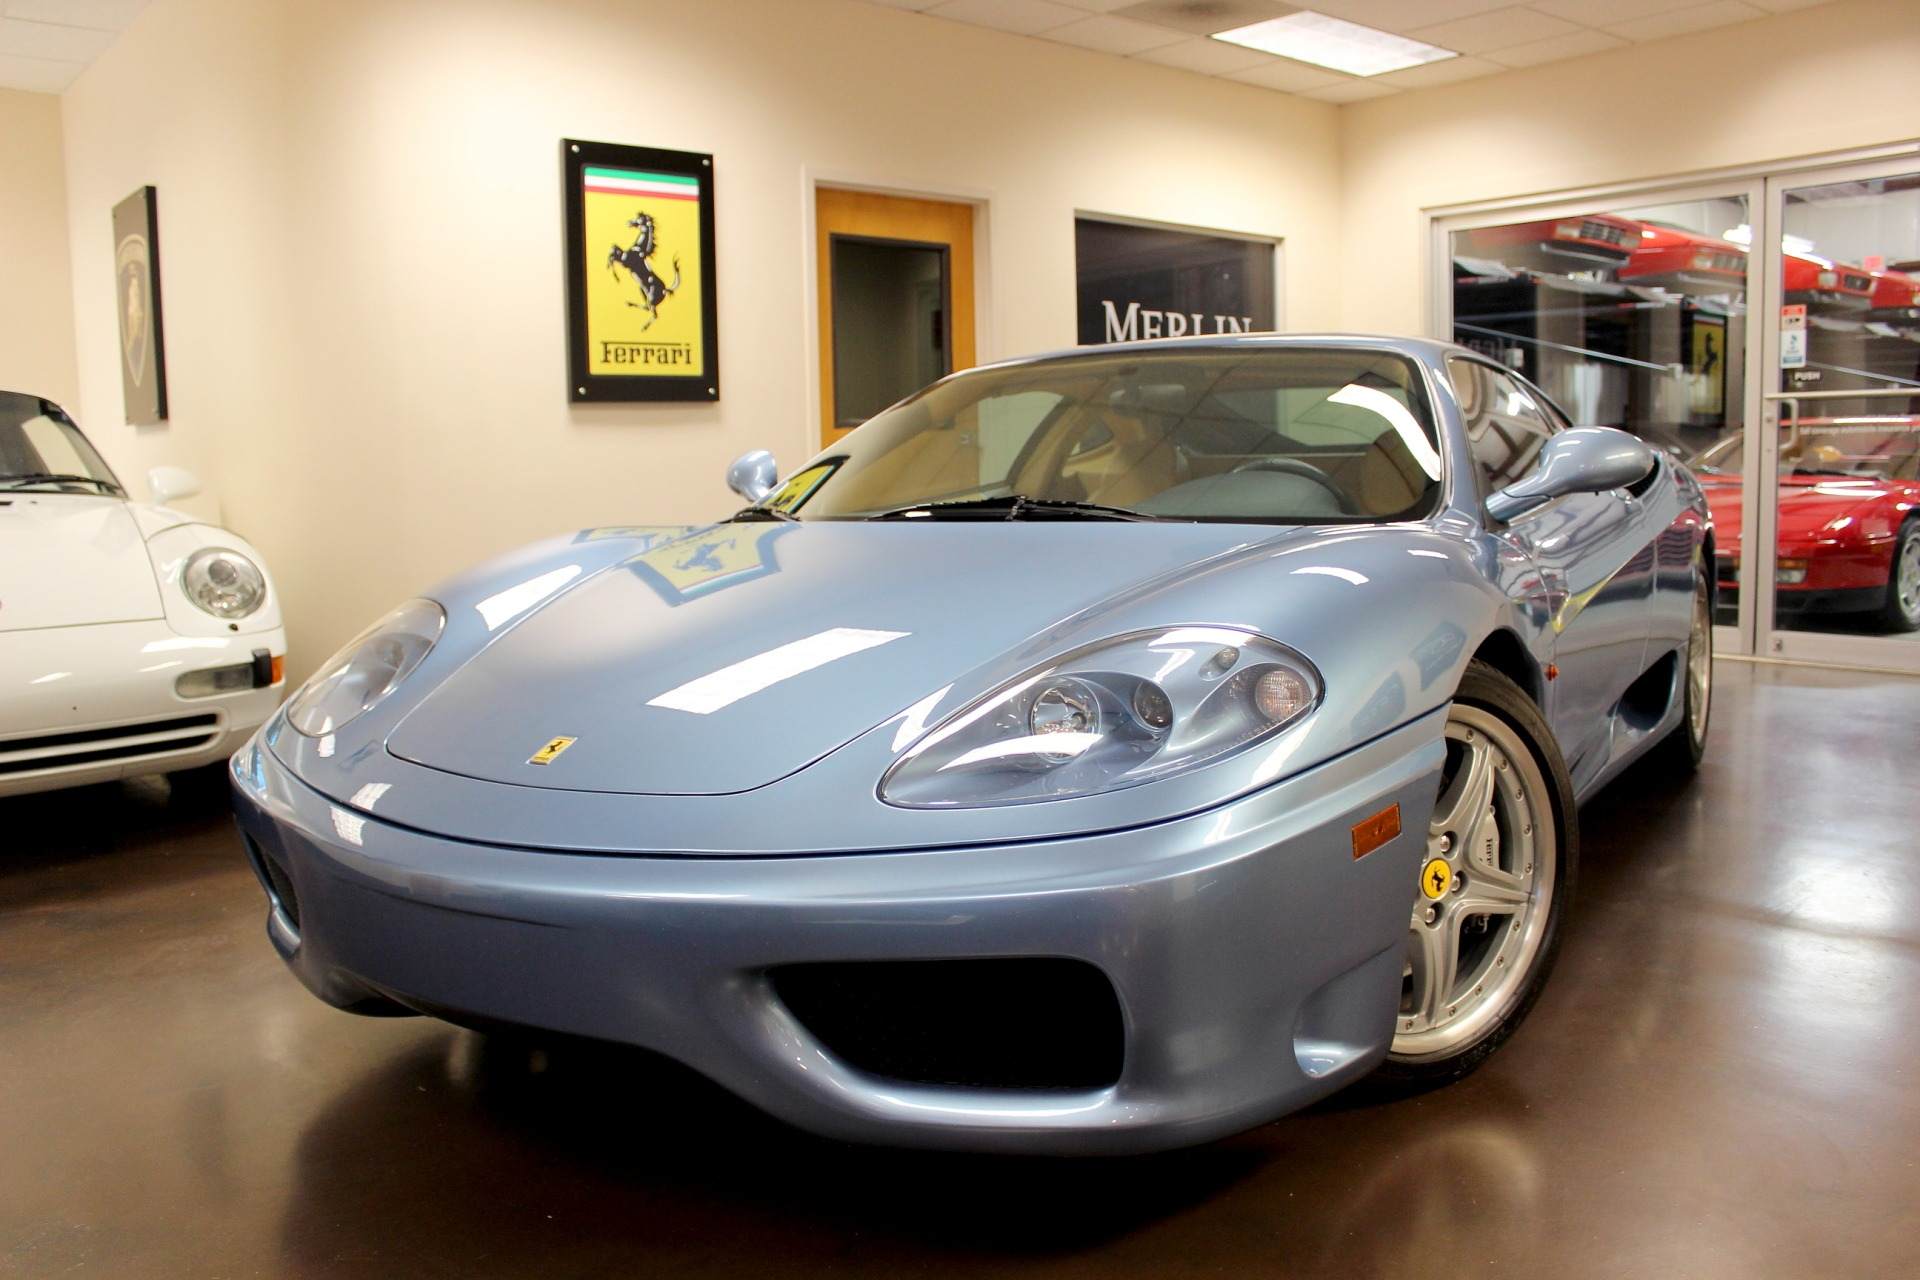 Used Ferraris for Sale Low Mileage Top Condition We Ship